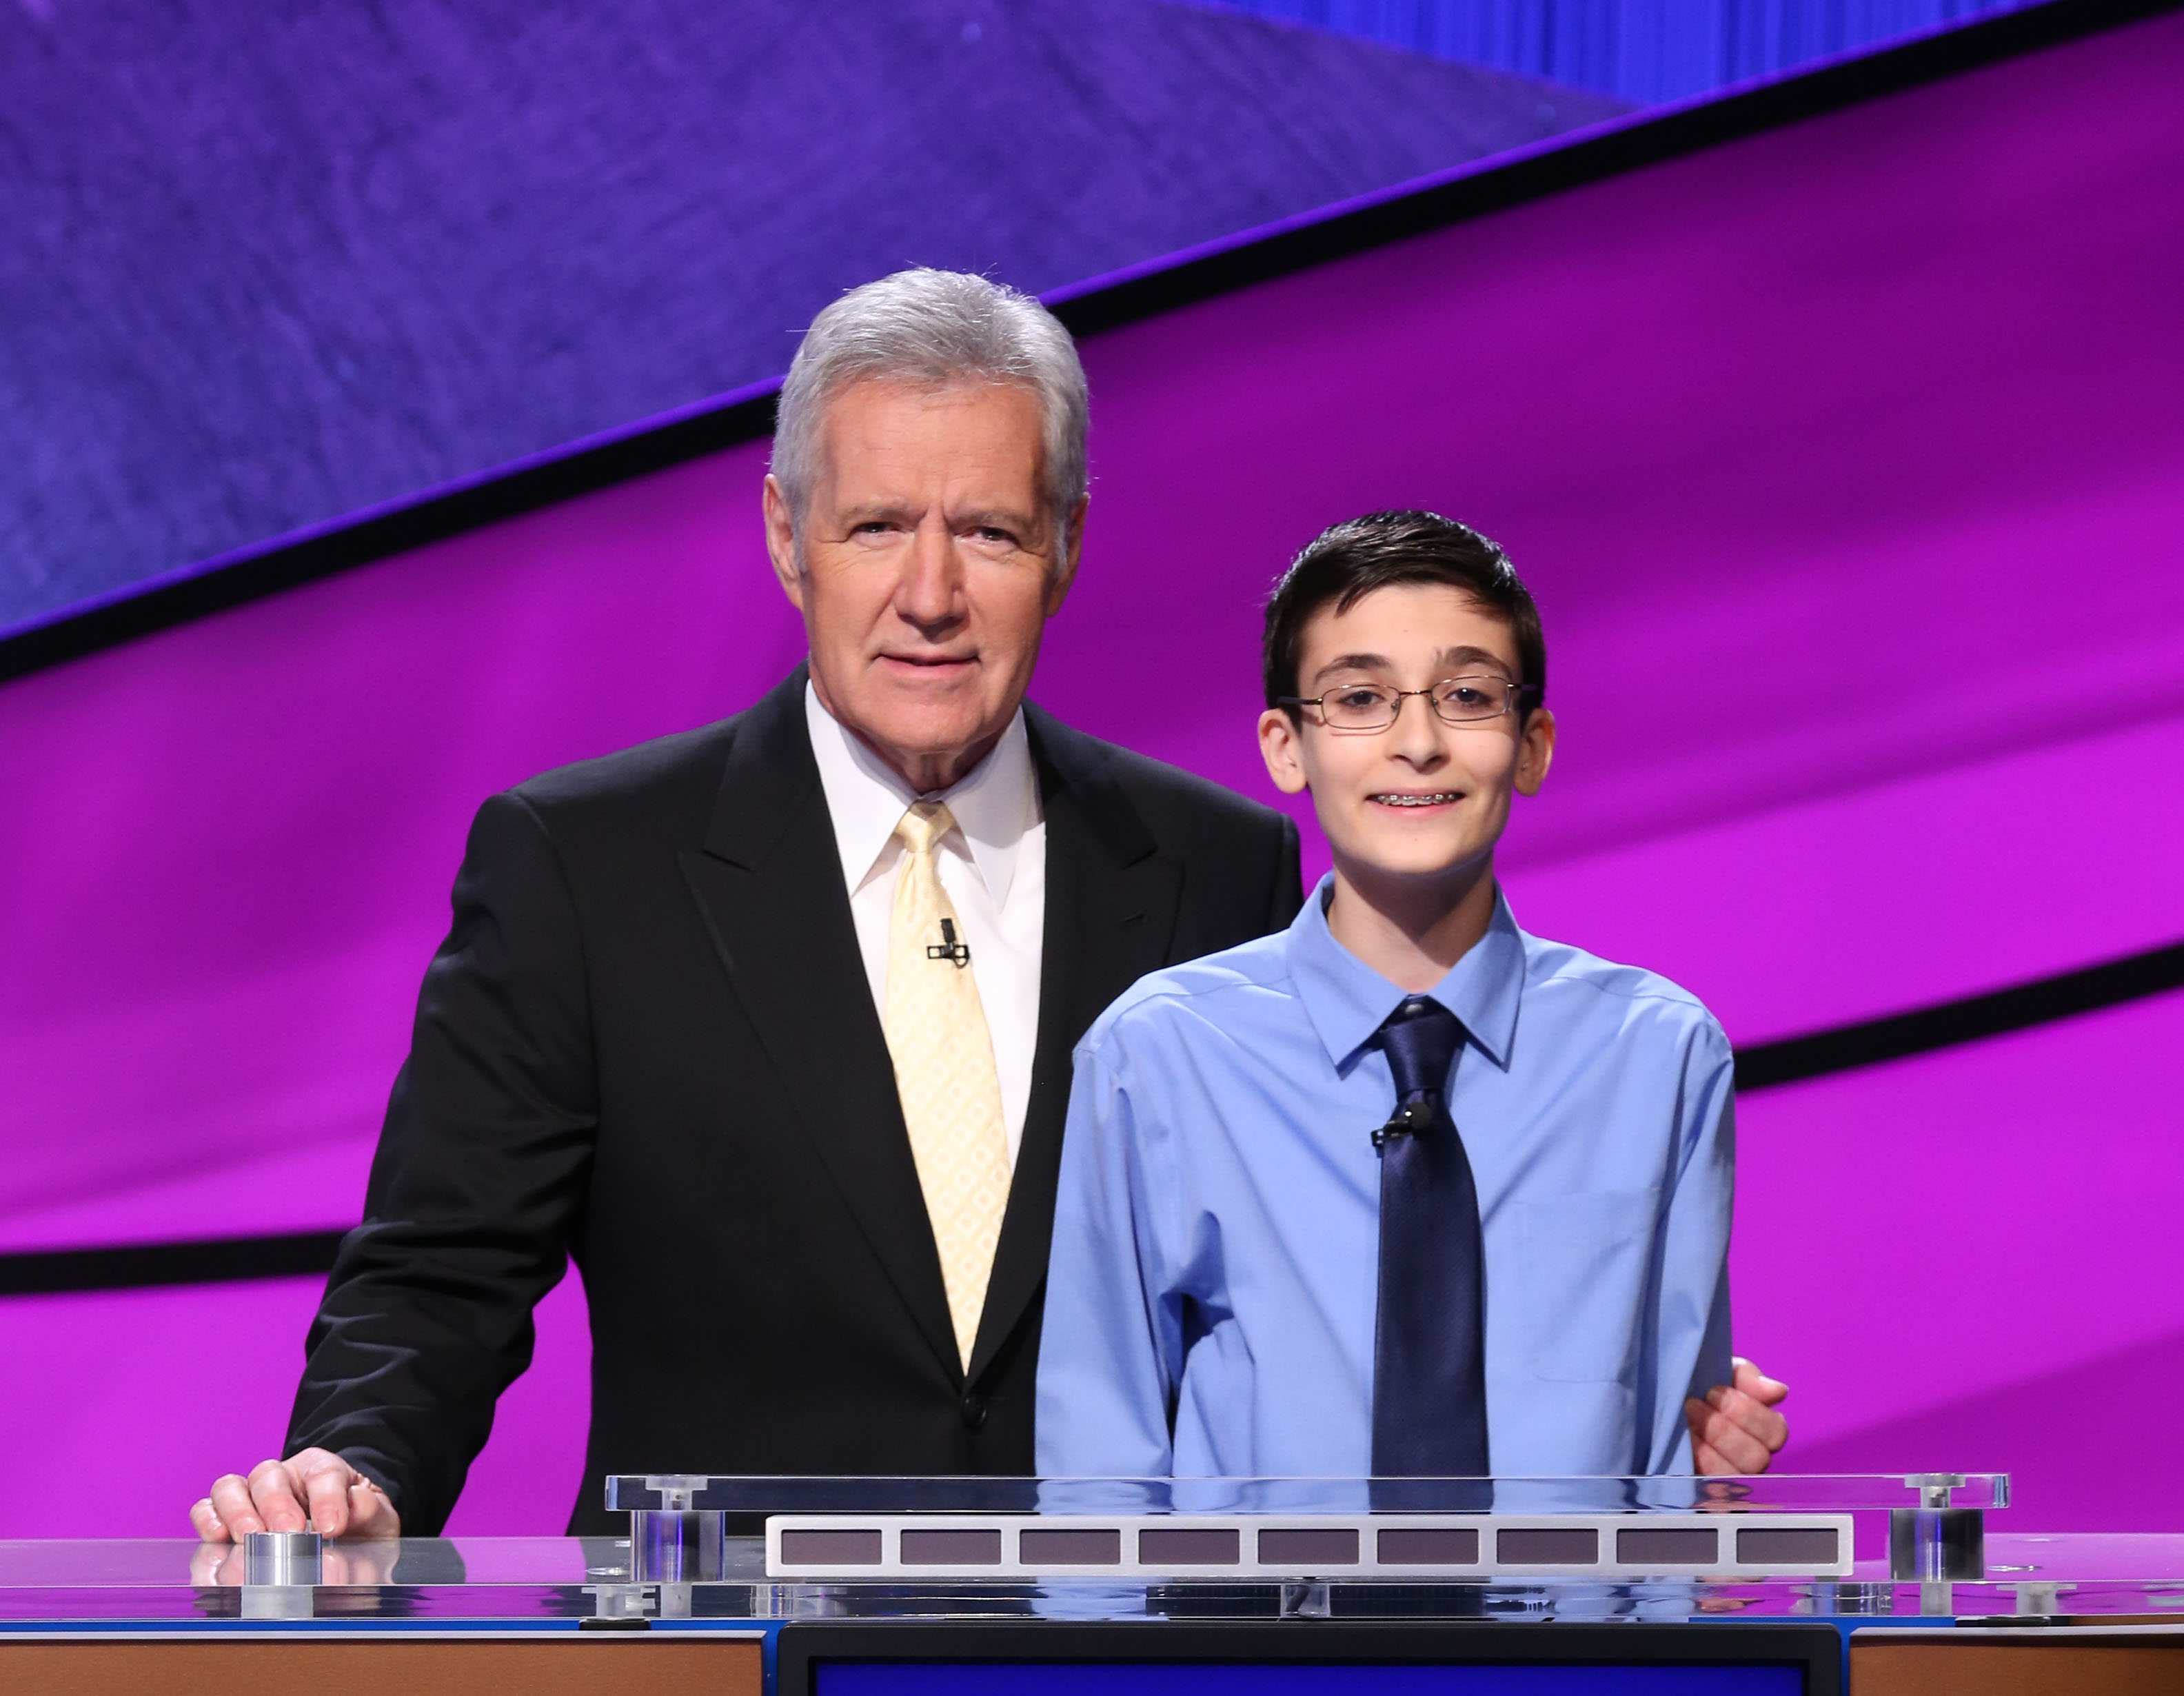 Golden was recently selected as one of 15 contestants in the Teen Jeopardy Tournament.